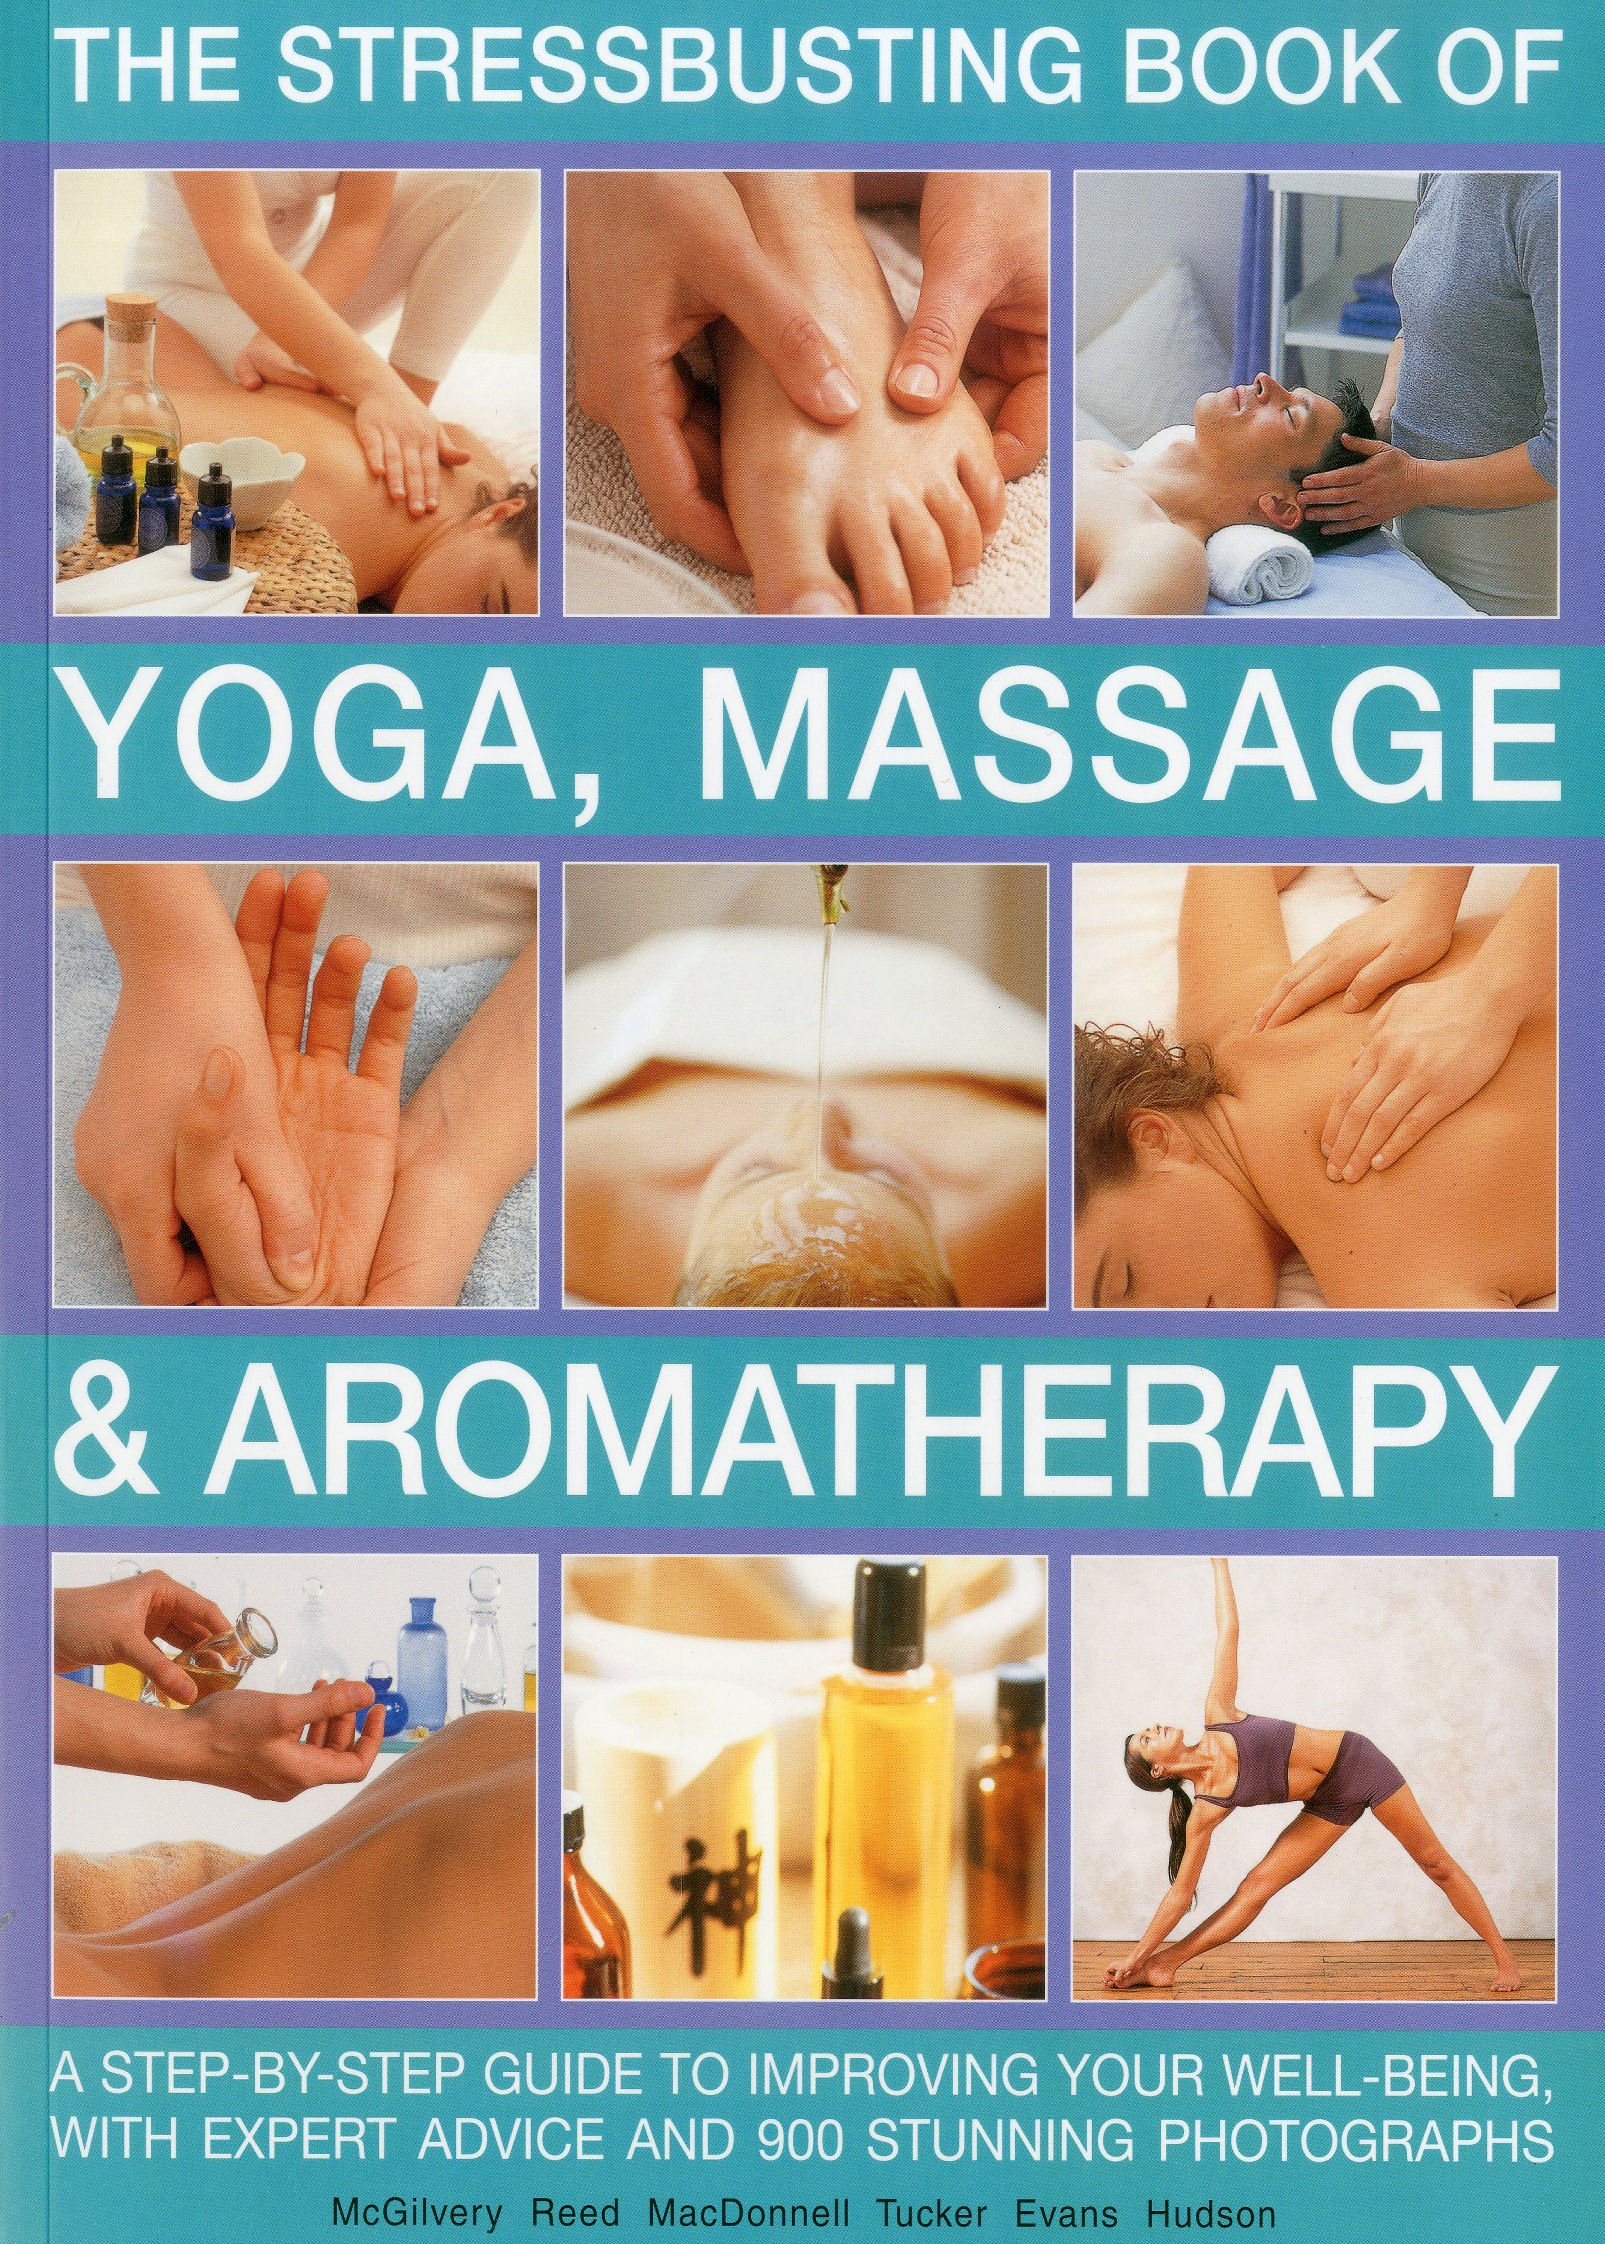 Stressbusting Book of Yoga, Massage &  Aromatherapy: A step-by-step guide to spiritual and physical well-being pdf epub